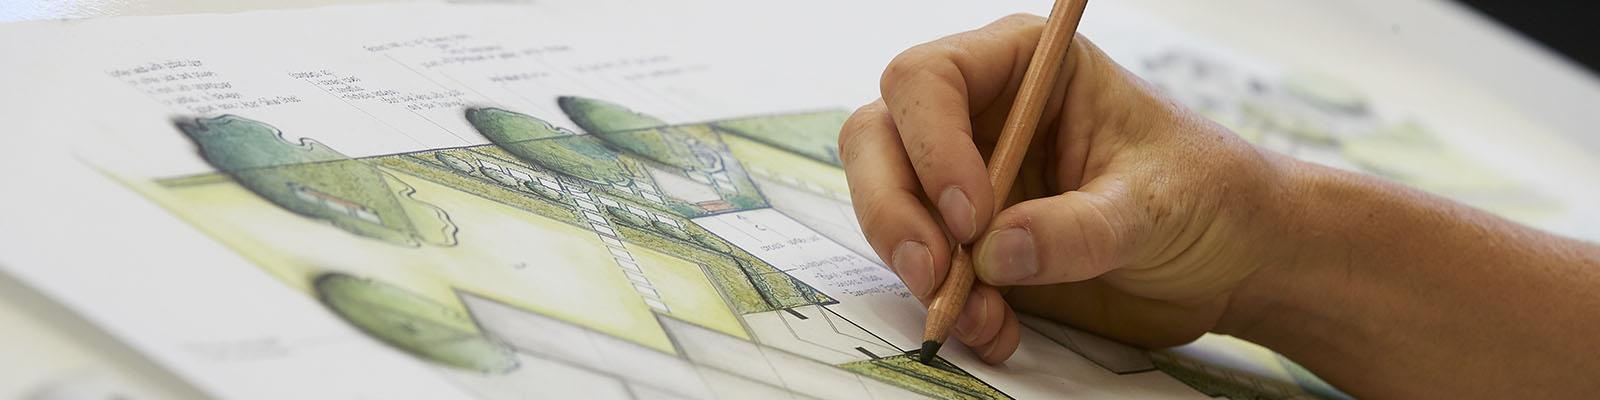 close up of landscape design plan